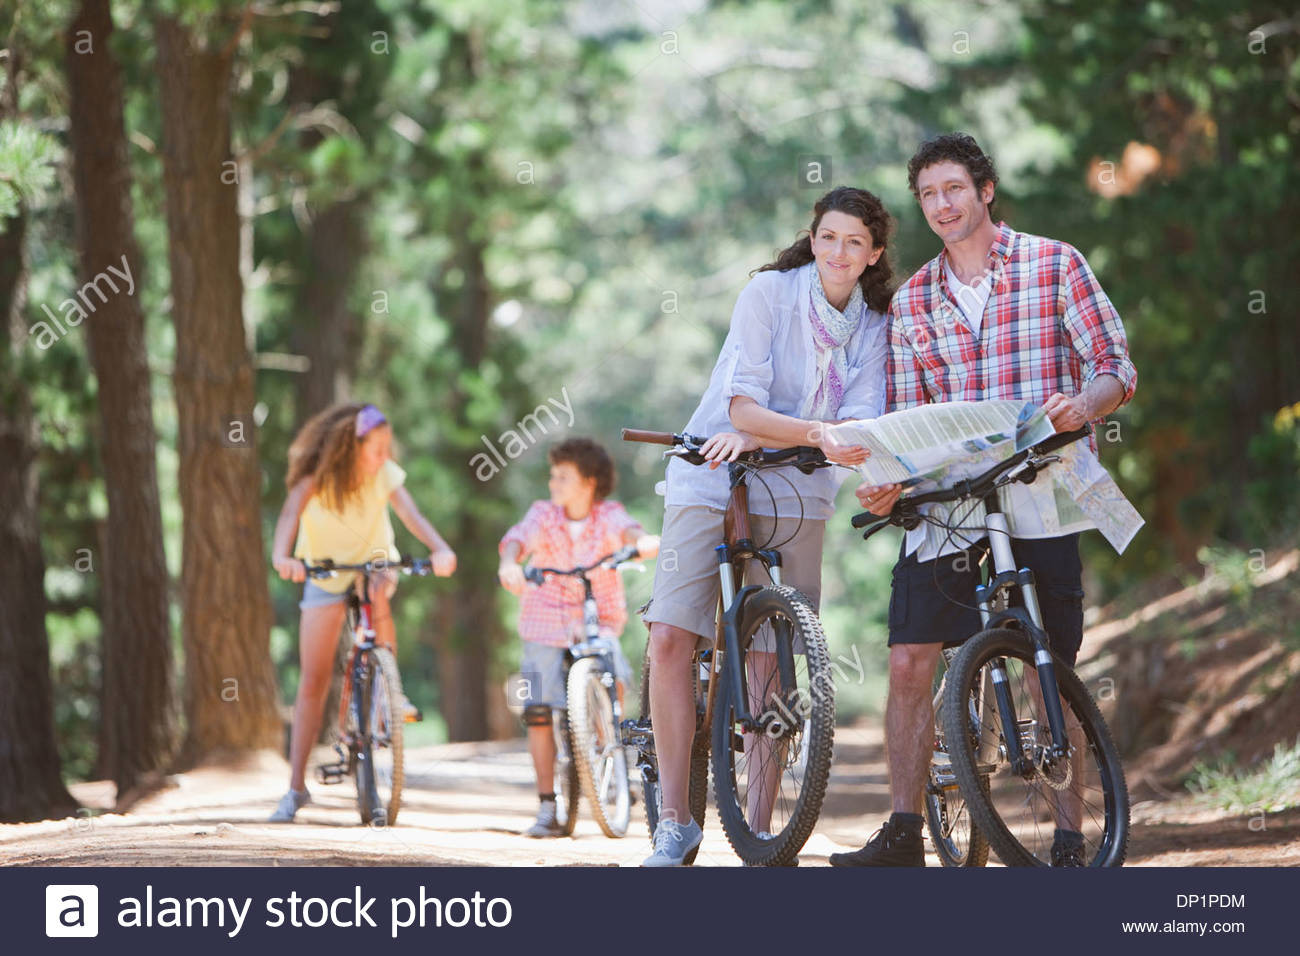 Family with bicycles looking at map in woods - Stock Image